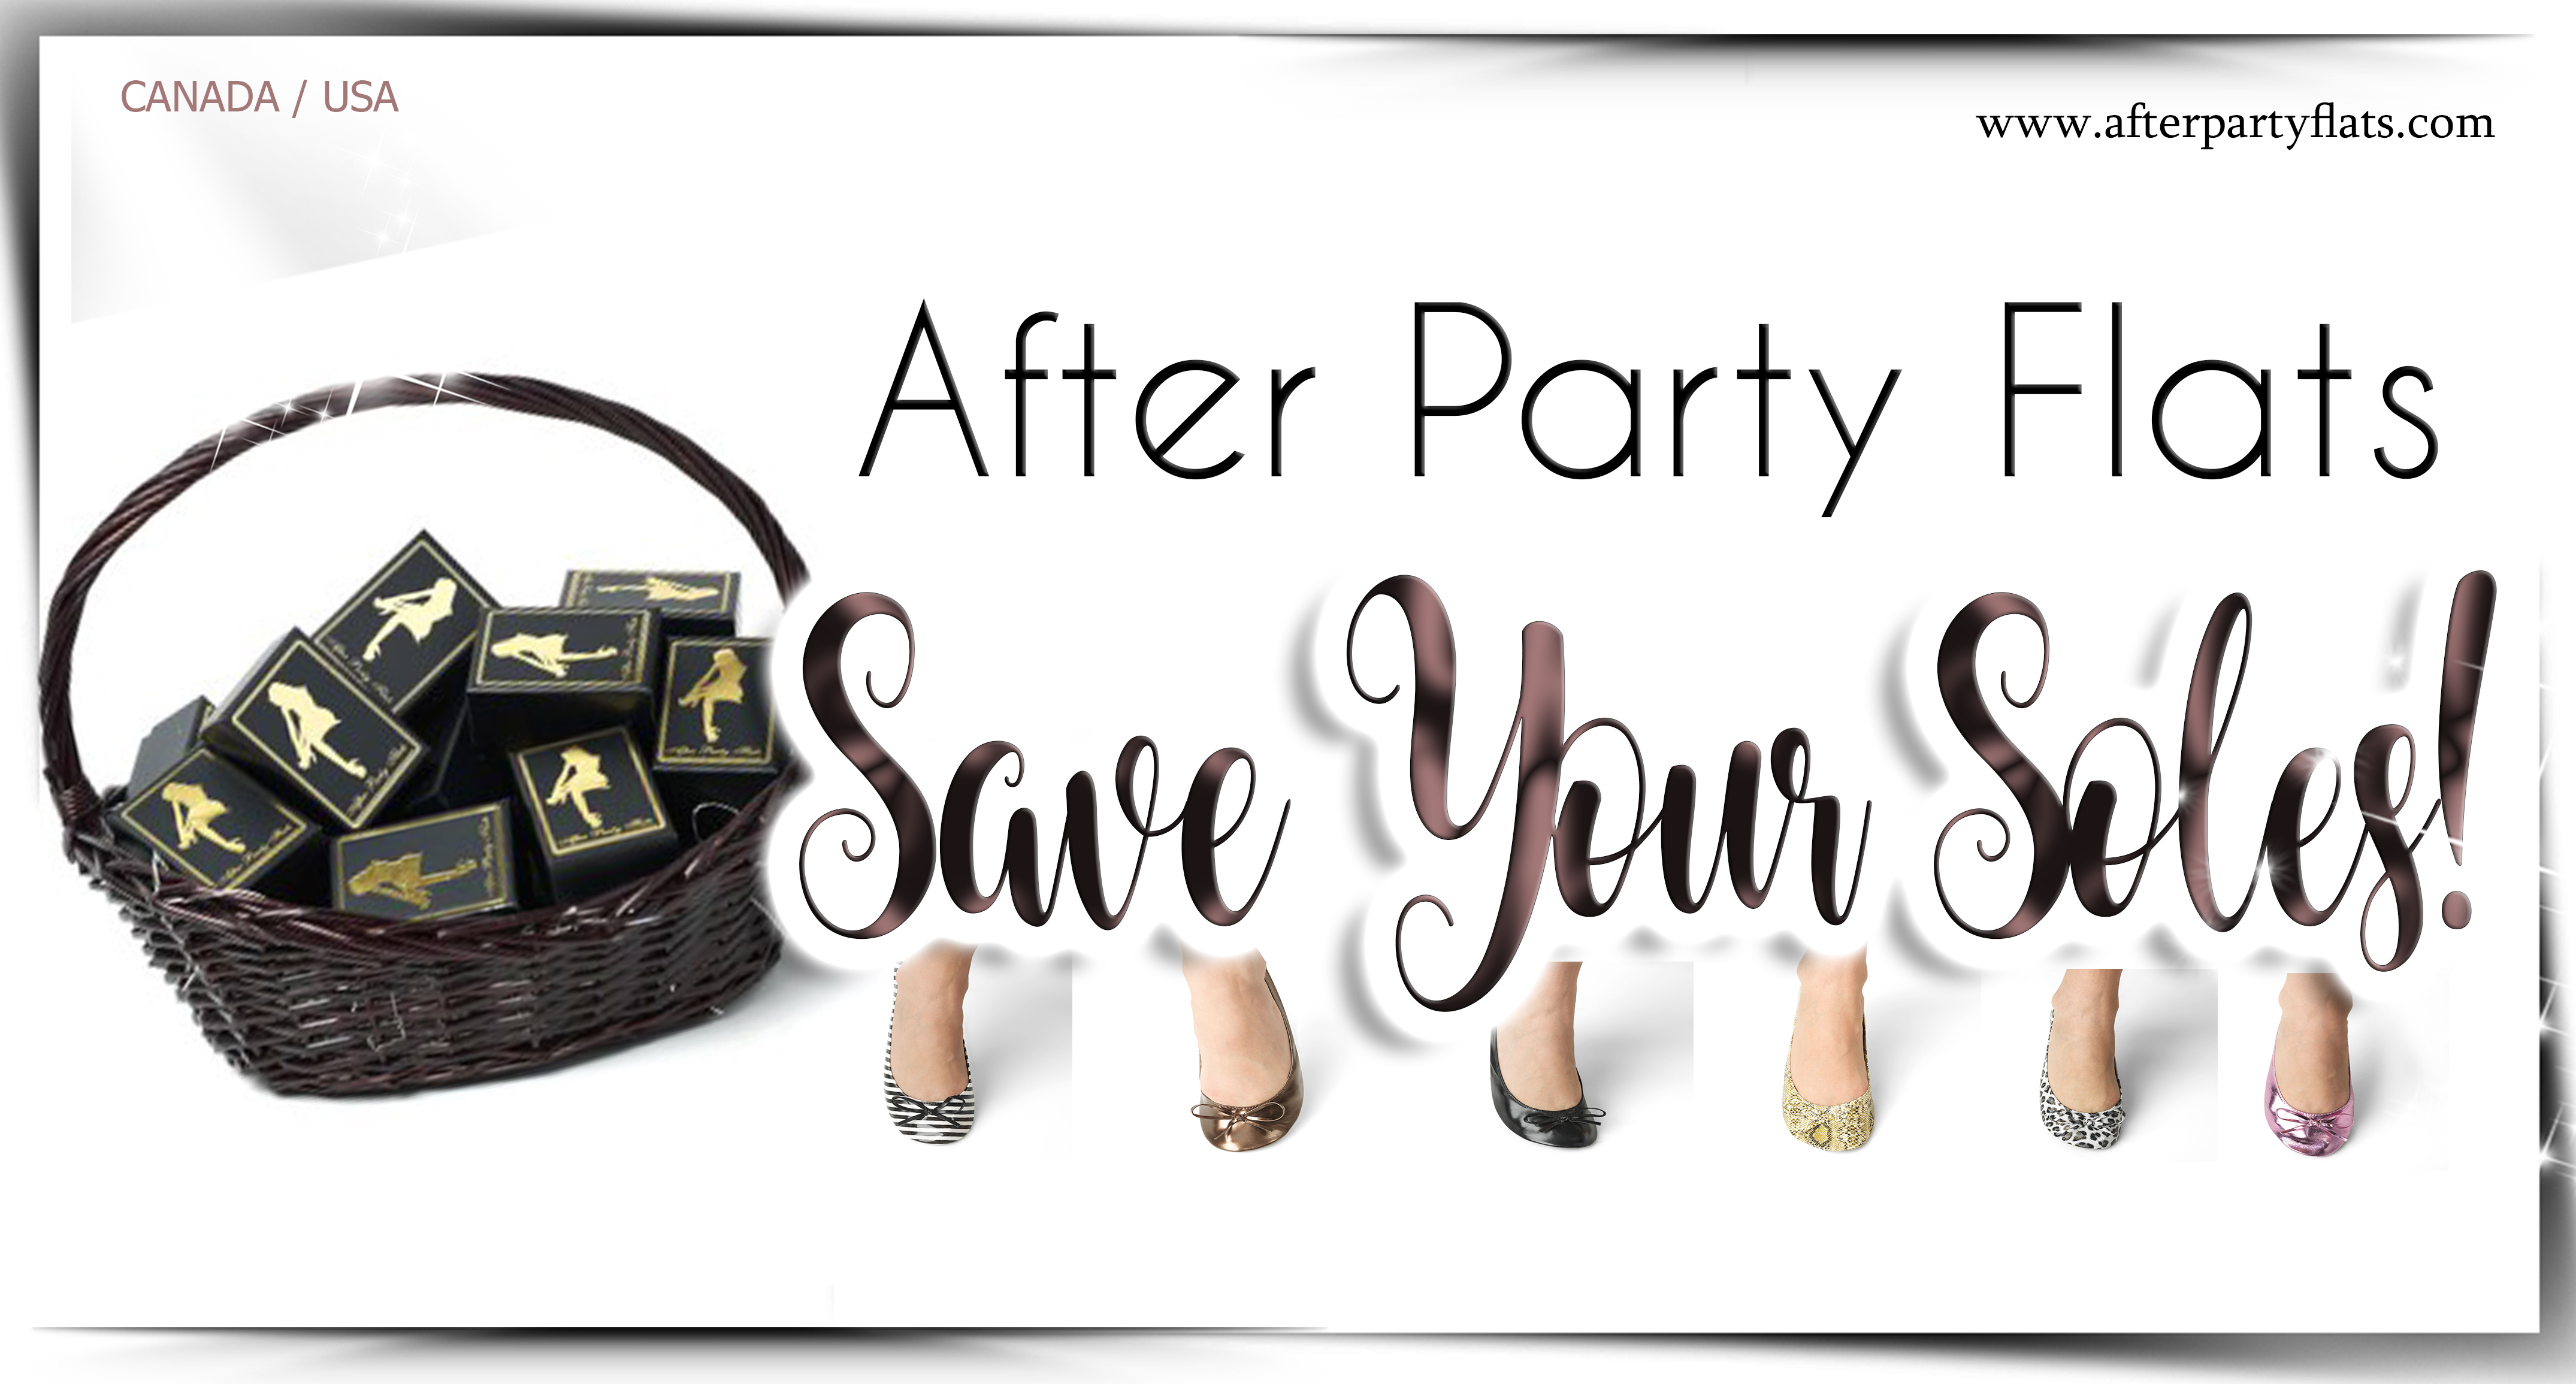 AFTER PARTY FLATS FB COVER PLAIN SHOES 4